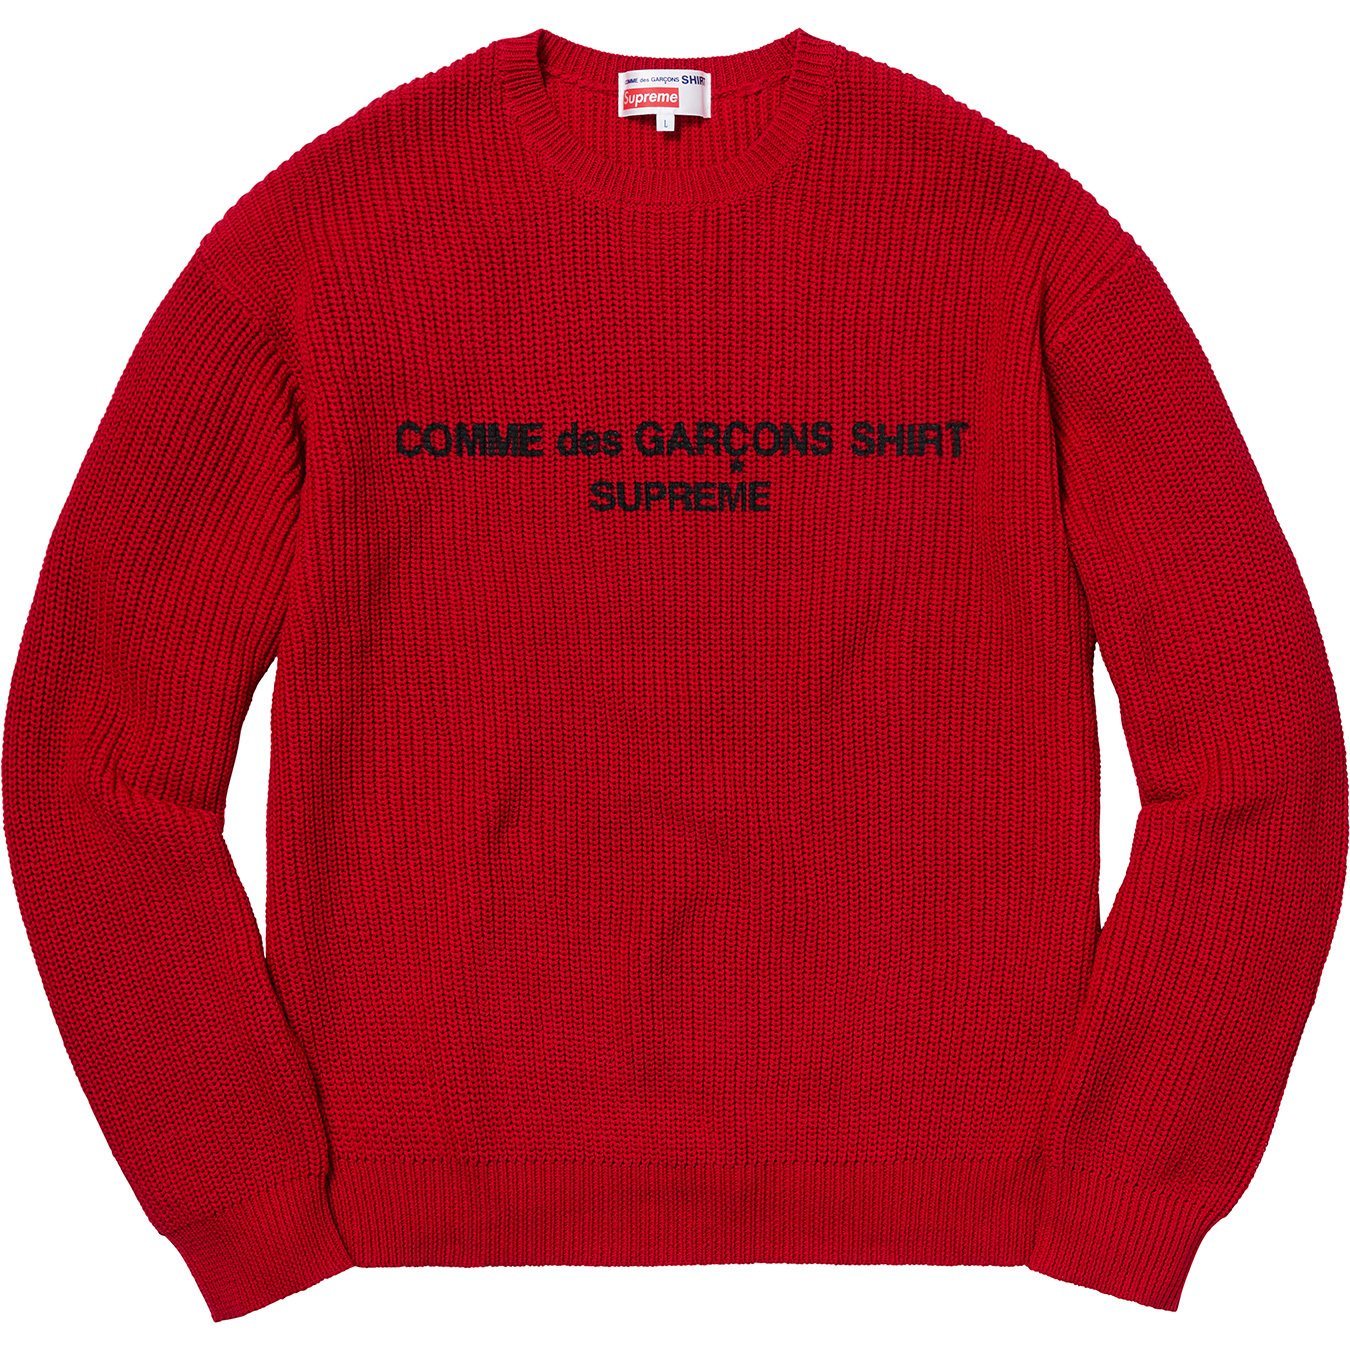 supreme-comme-des-garcons-shirt-cotton-sweater-18aw-collaboration-release-20180915-week4